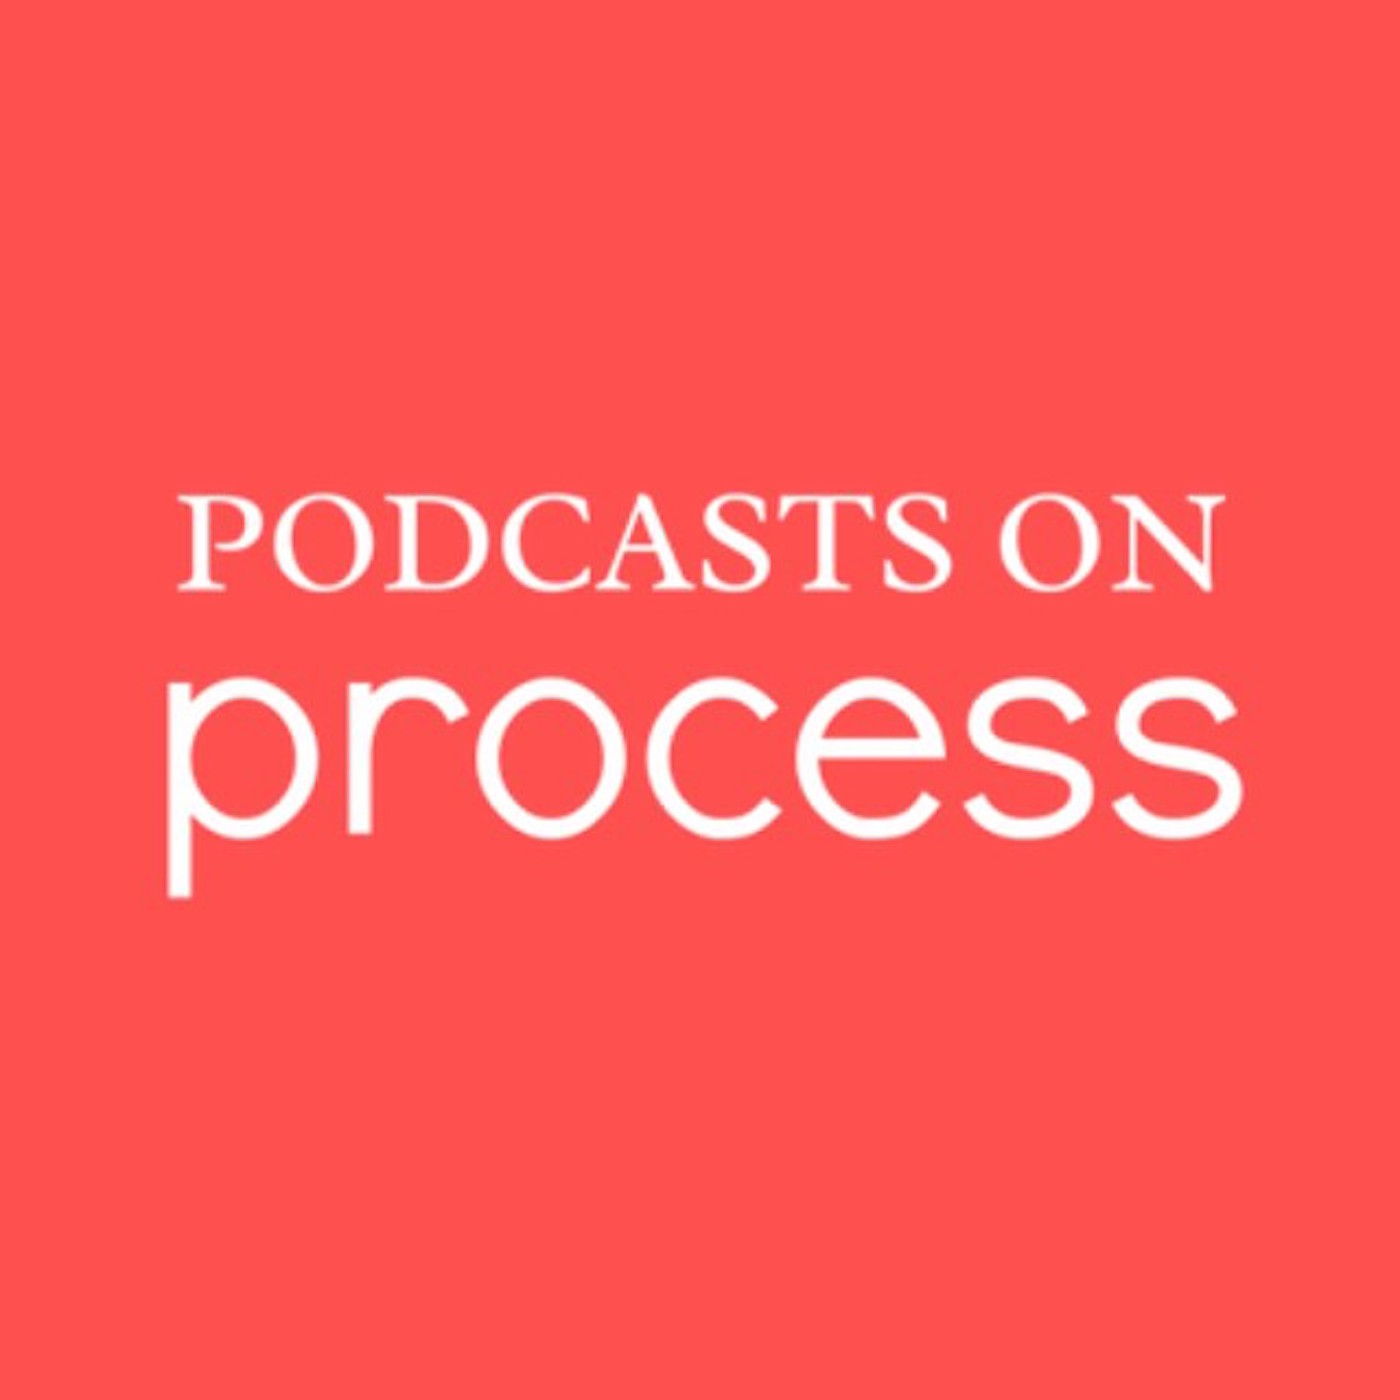 Podcasts on Process - podcasts on process